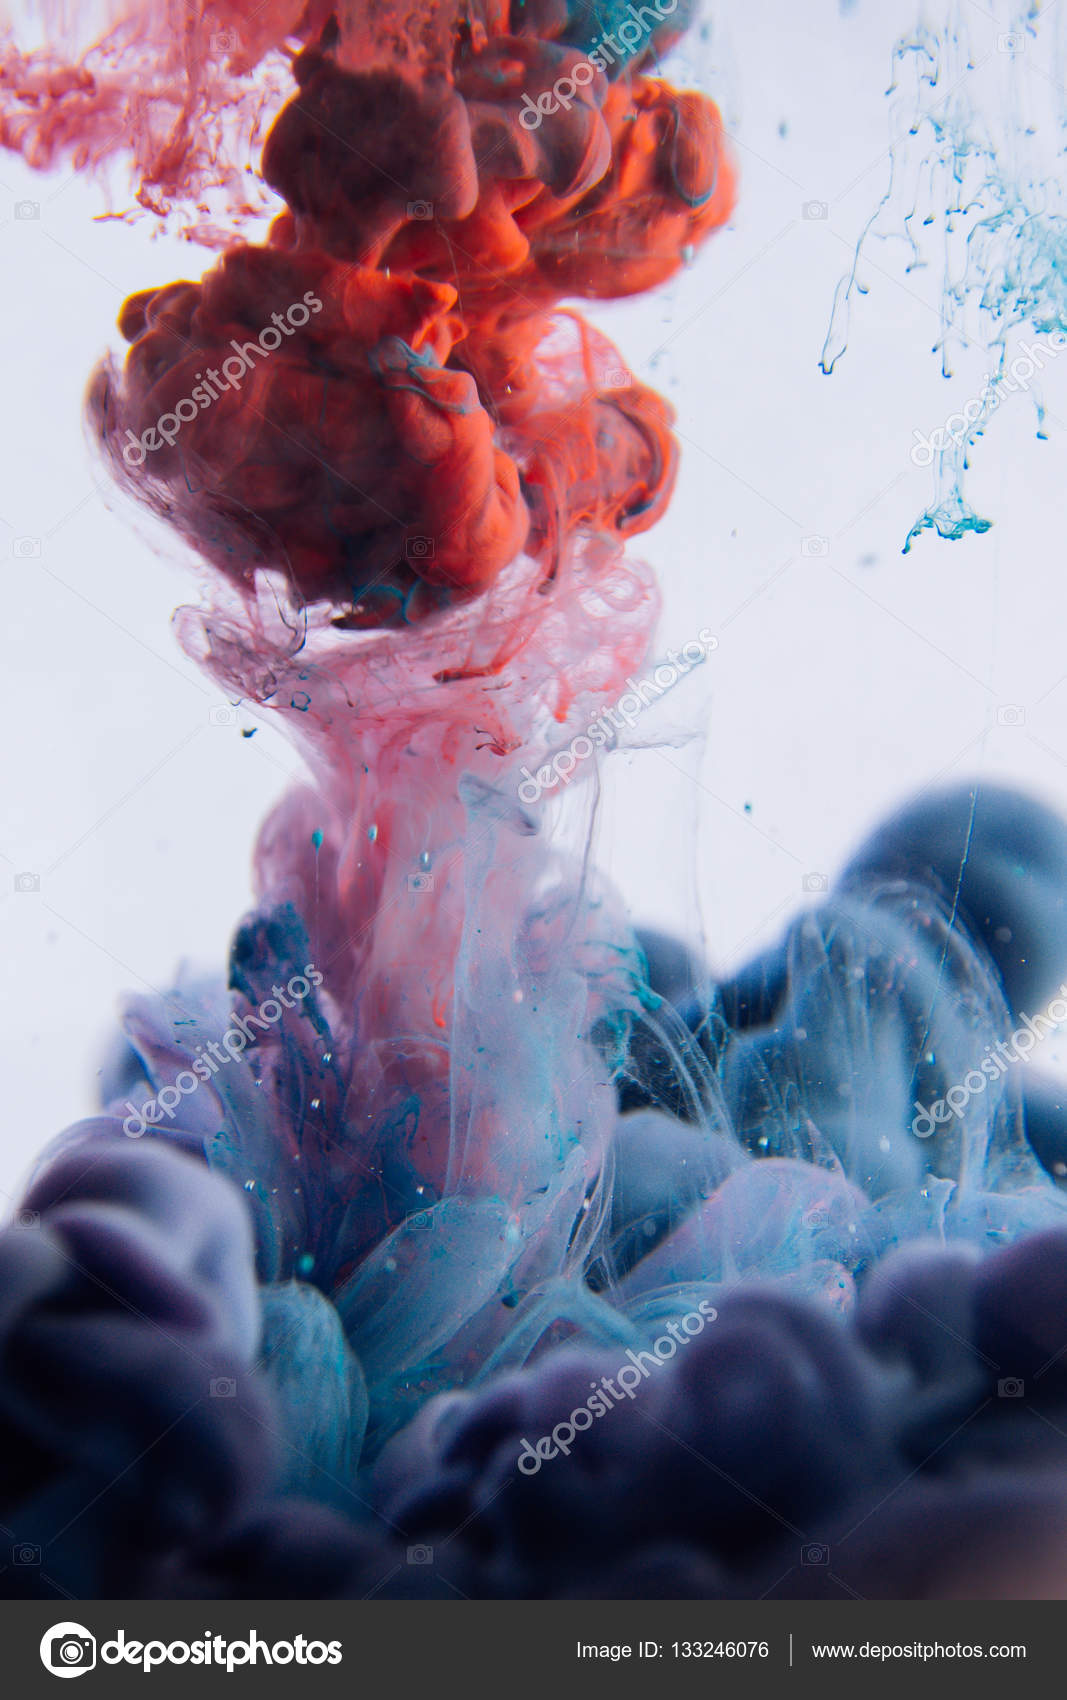 The Colorful Dye In Water Abstract Background Wallpaper Concept Art Stock